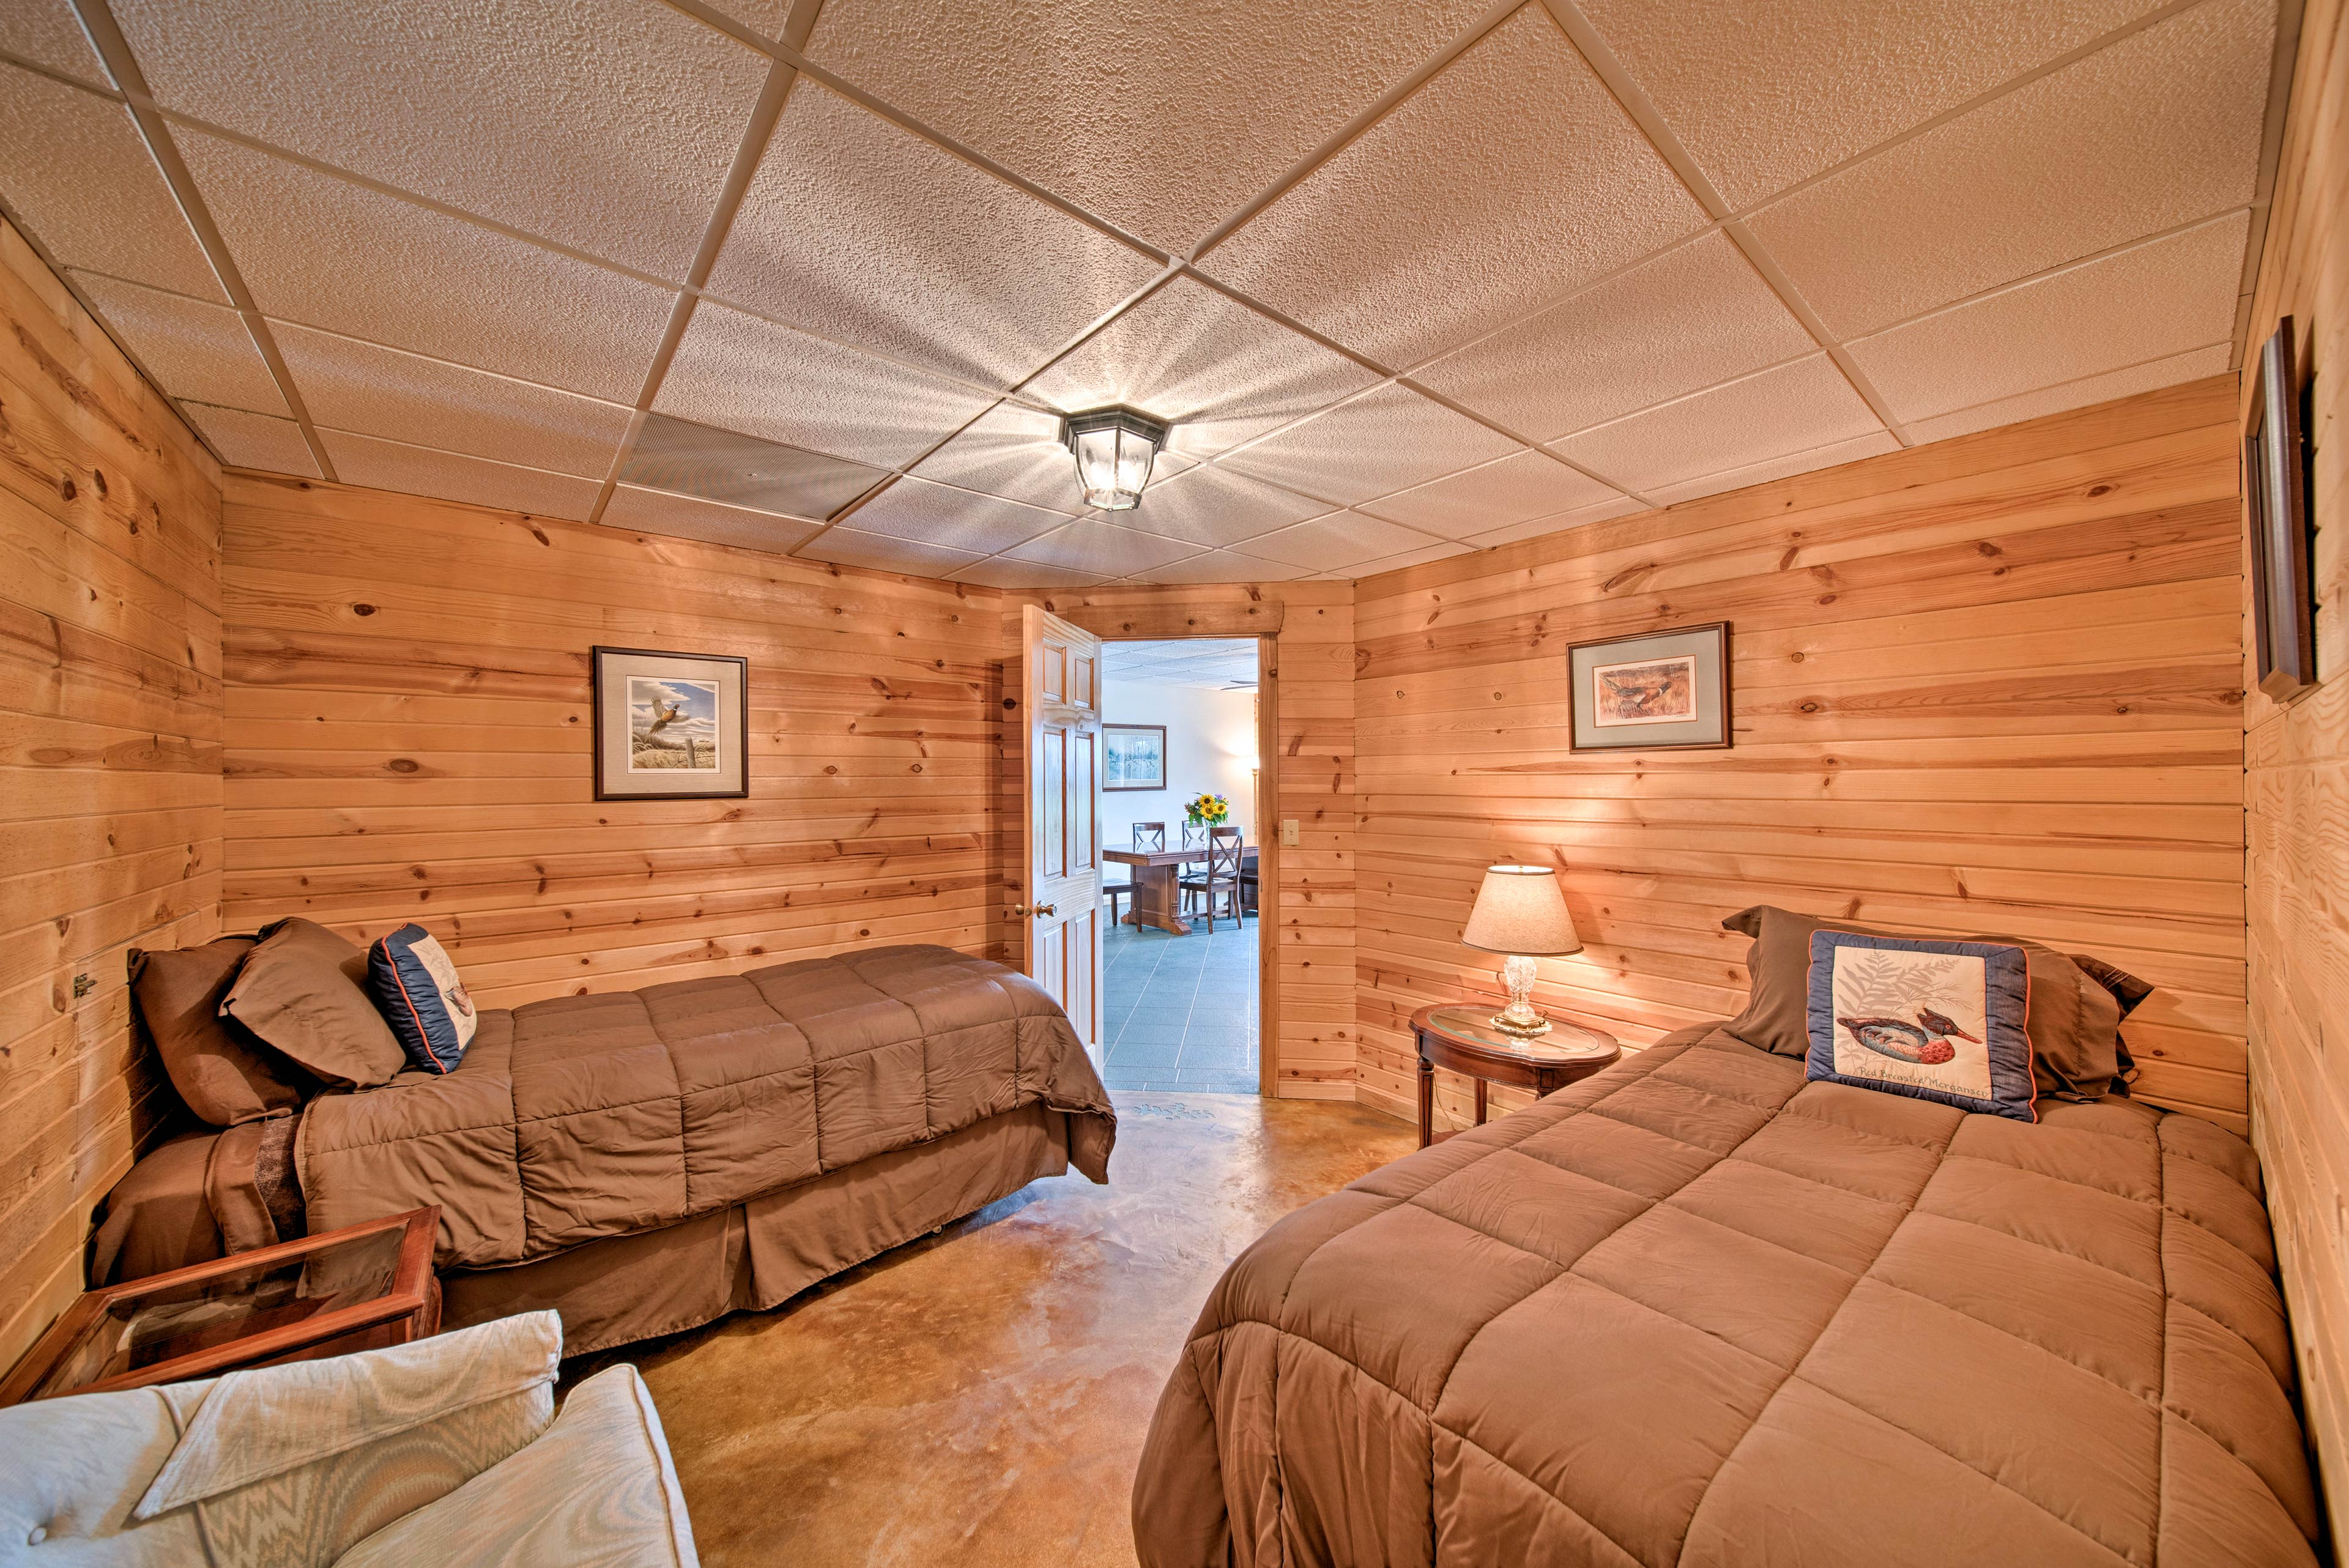 With 2 twin beds and 2 air mattresses, this room can accommodate 5.